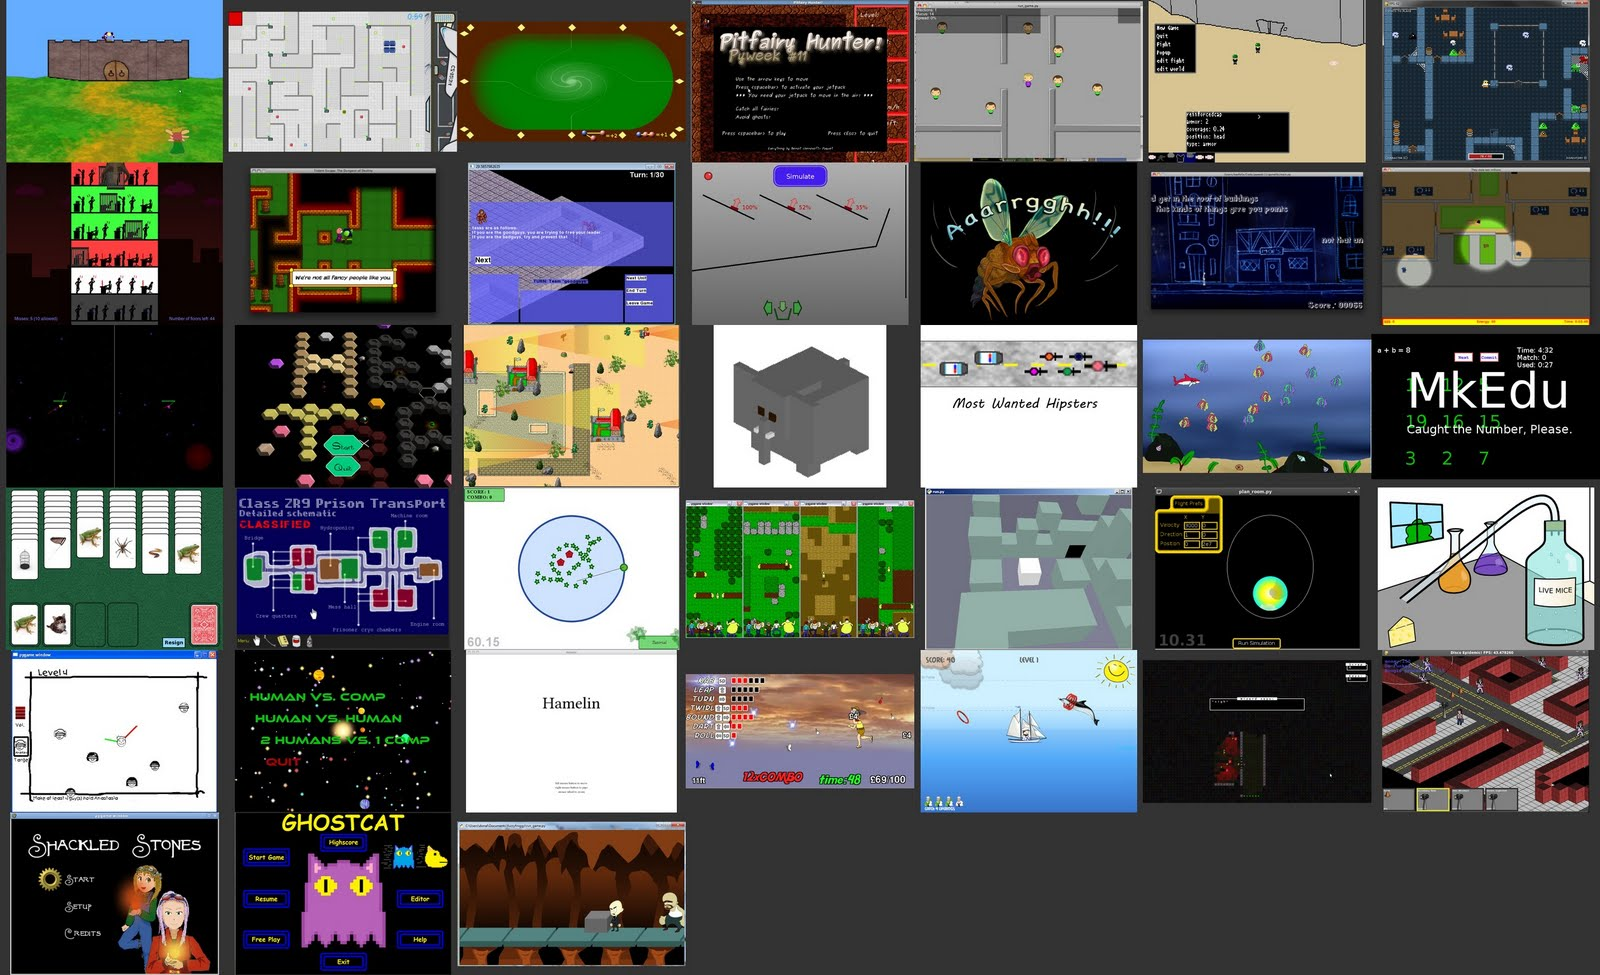 Free Gamer - Open Source Games (Free/Libre): PyWeek 12 is